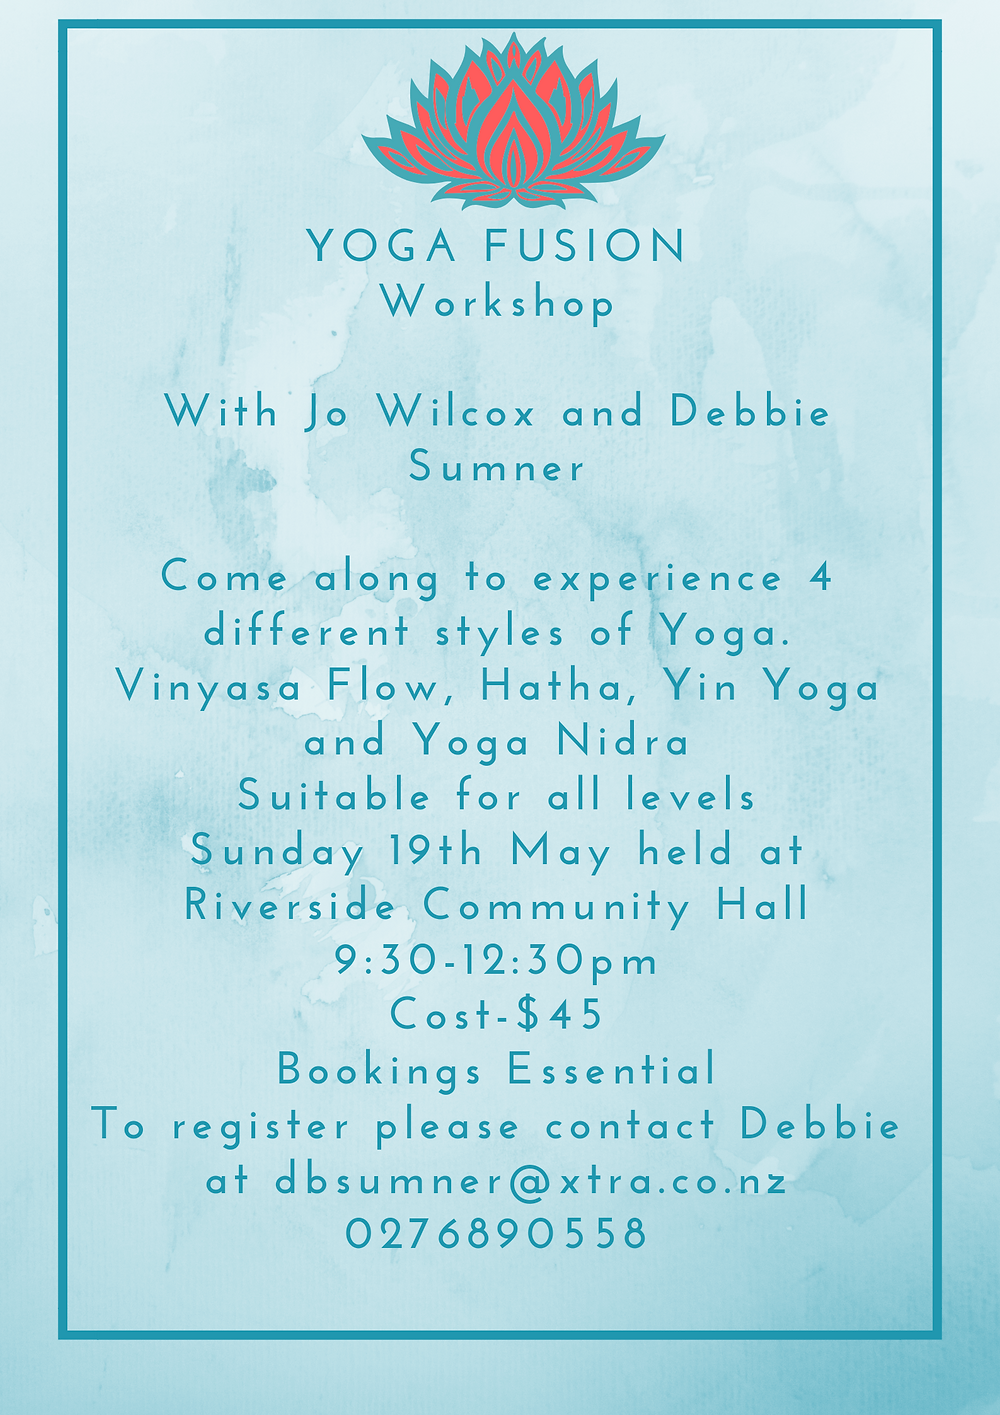 Yoga Fusion Workshop